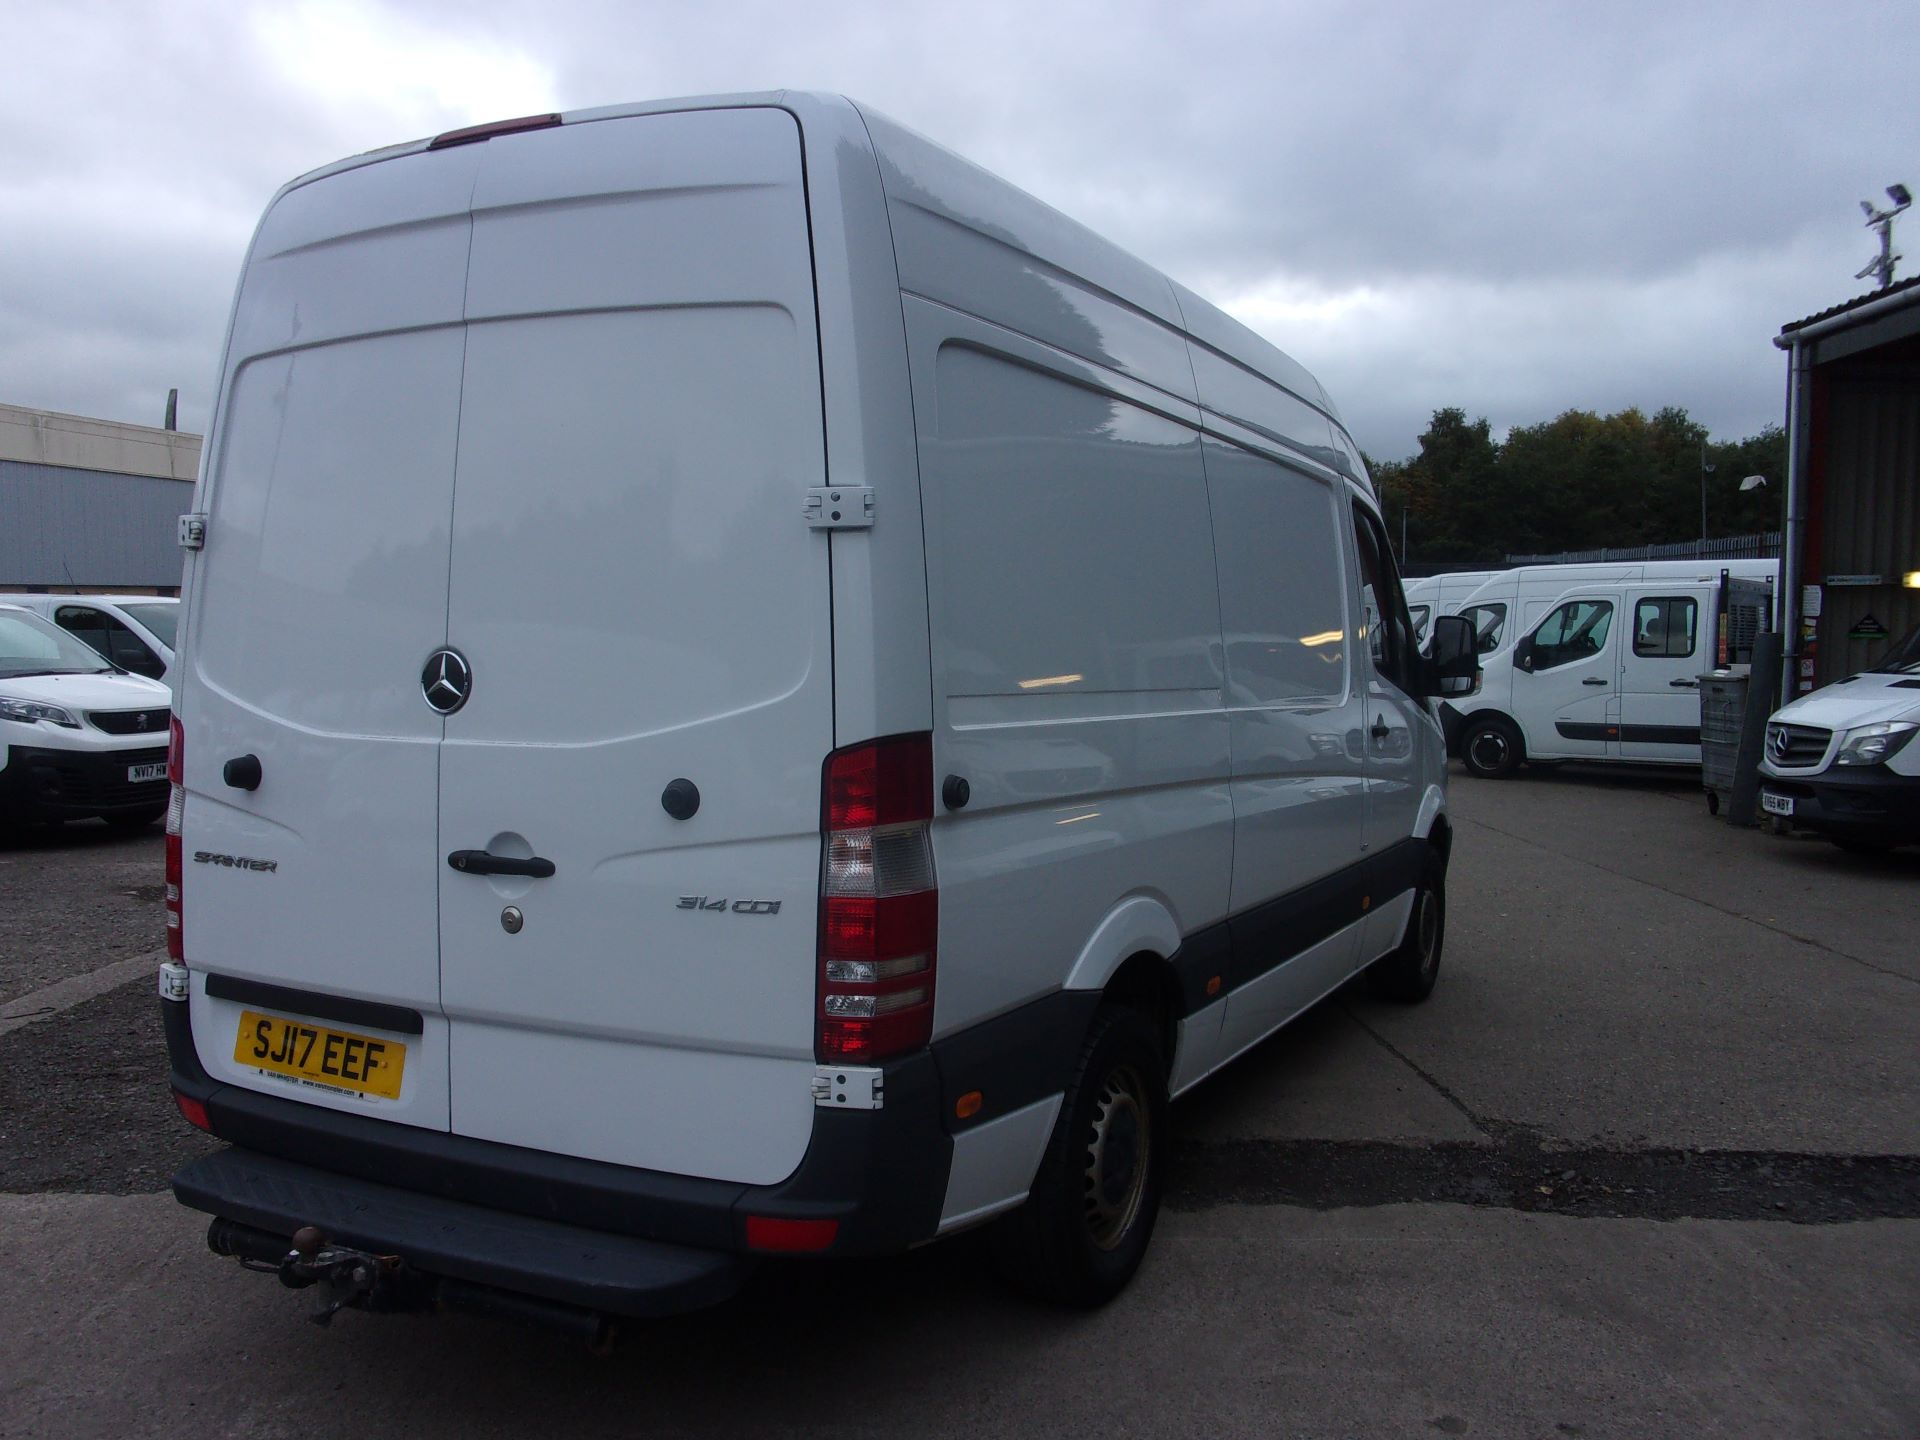 2017 Mercedes-Benz Sprinter 314 CDI MWB HIGH ROOF EURO 6 (SJ17EEF) Image 9